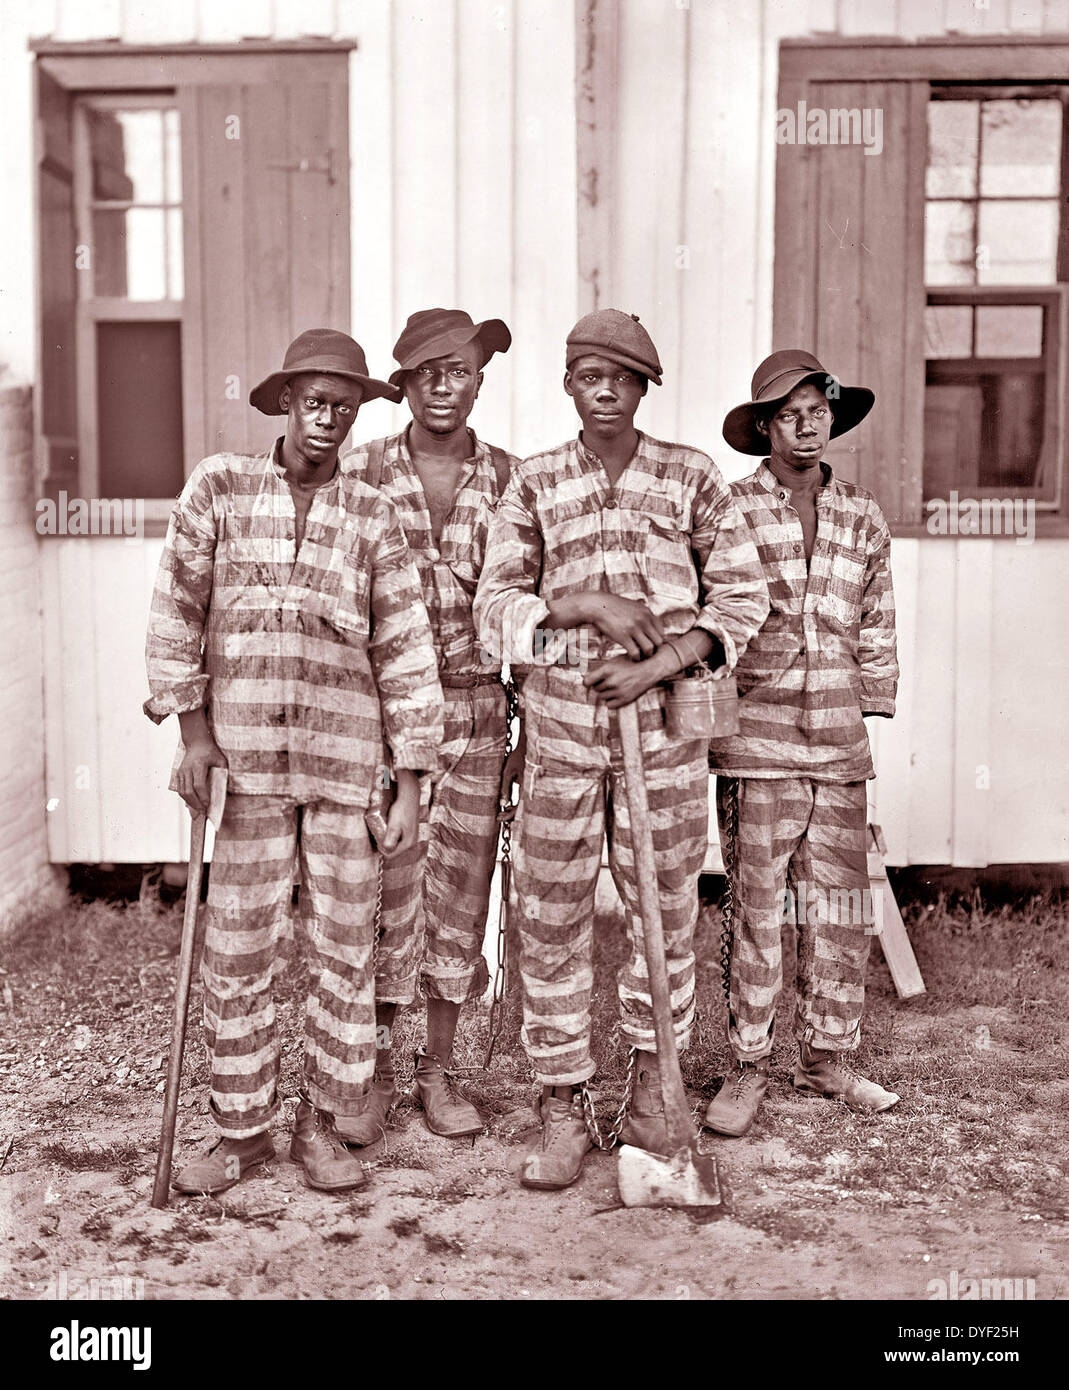 A chain gang from the southern states of the USA 1905 - Stock Image